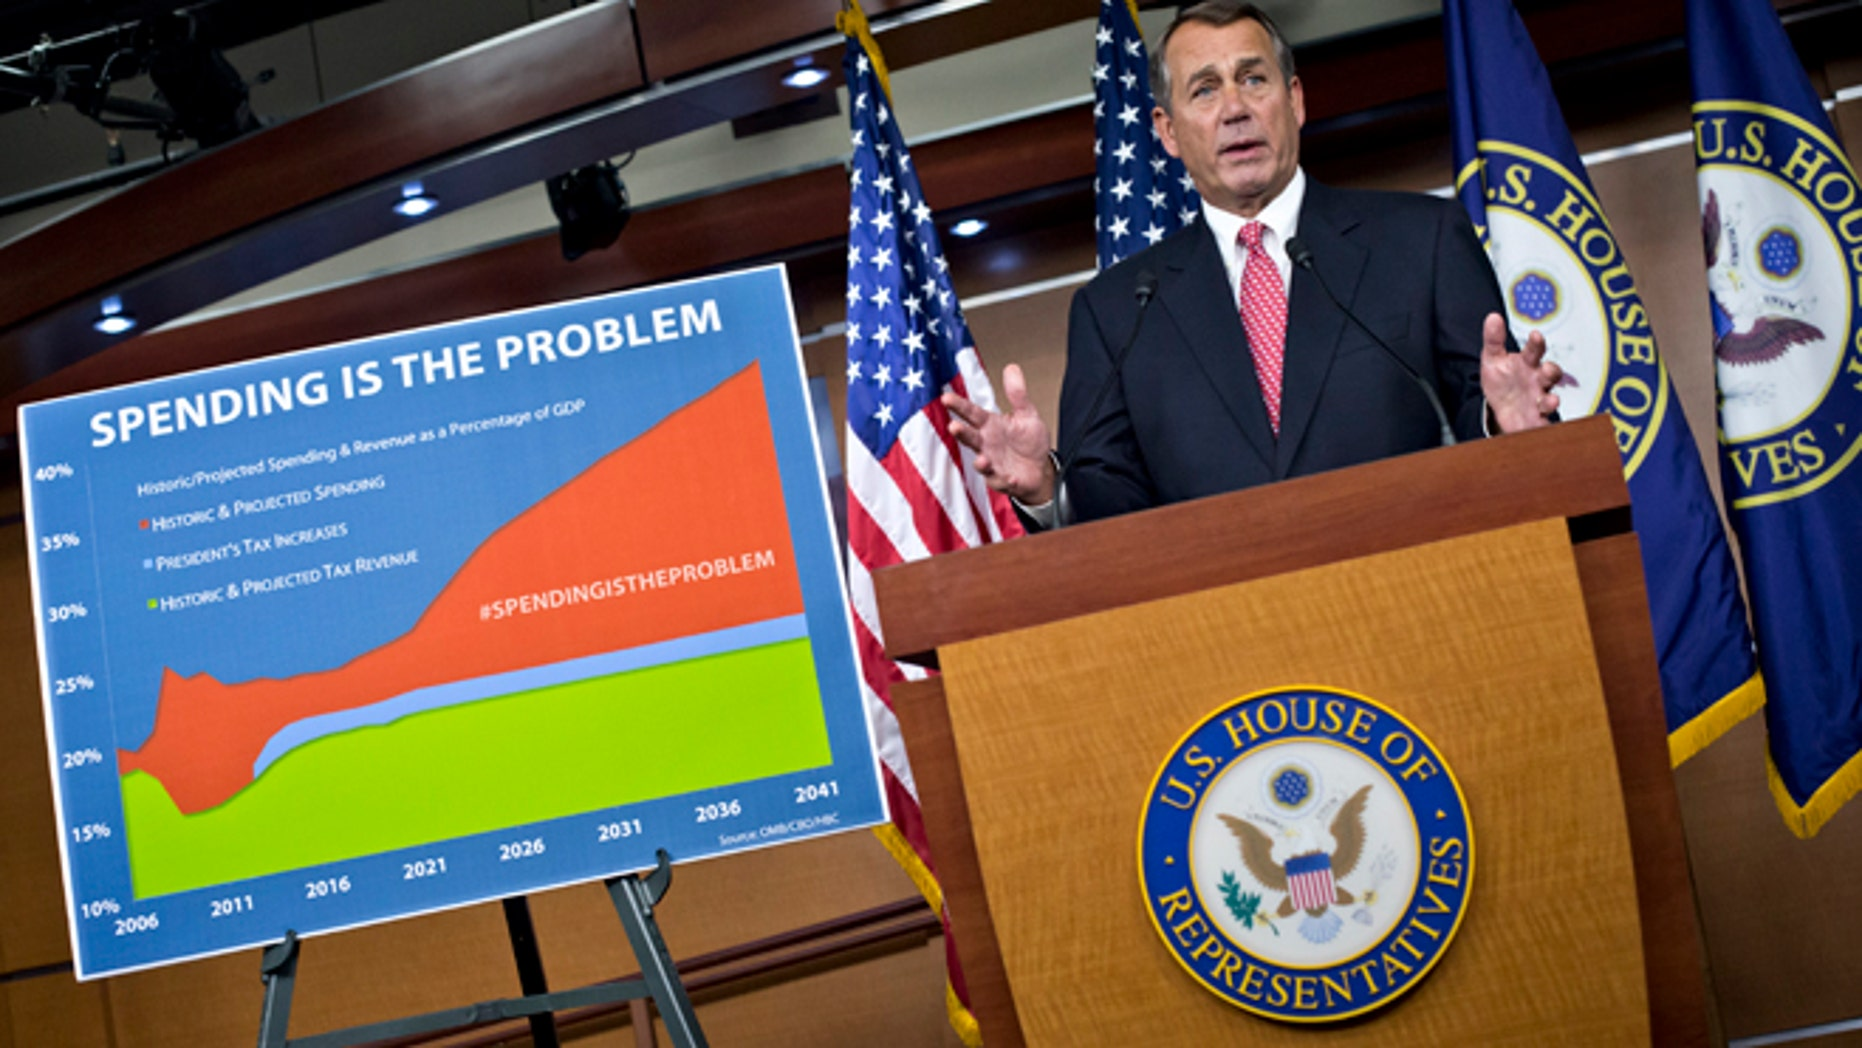 FILE: Dec. 13, 2012: House Speaker John Boehner, R-Ohio, accuses President Obama of not being serious about cutting government spending during a news conference on Capitol Hill, in Washington, D.C.